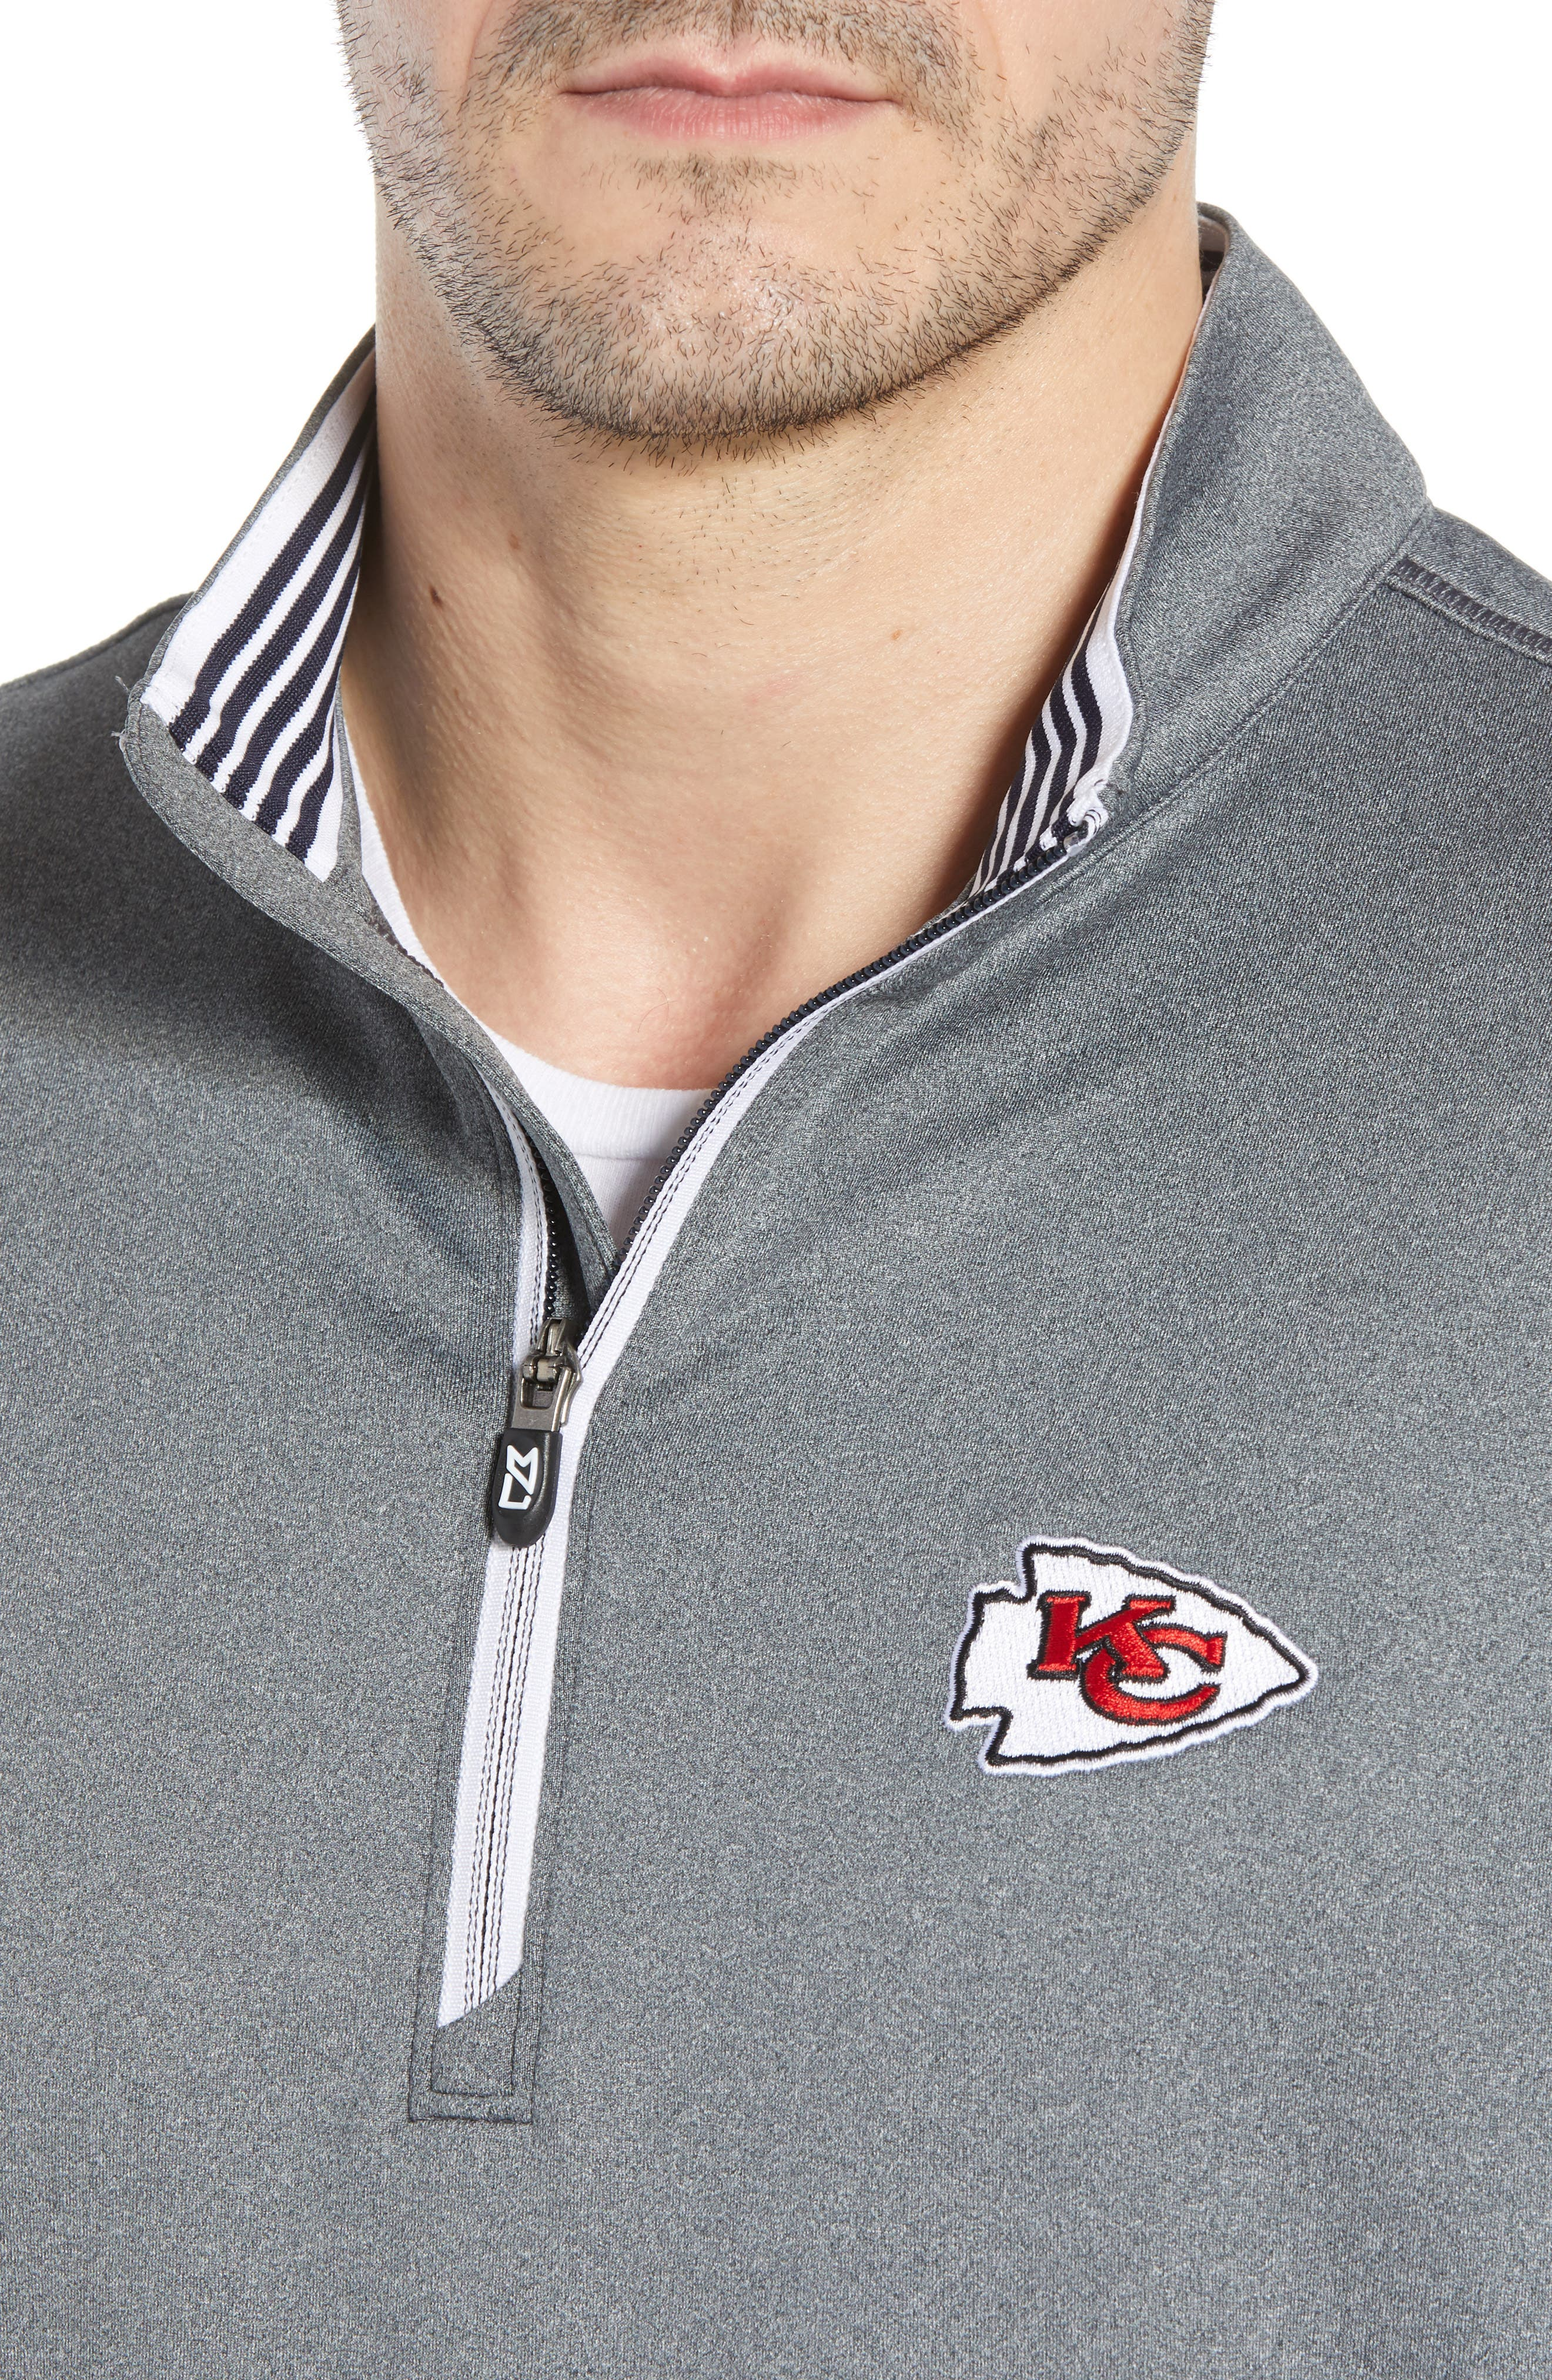 Endurance Kansas City Chiefs Regular Fit Pullover,                             Alternate thumbnail 4, color,                             CHARCOAL HEATHER